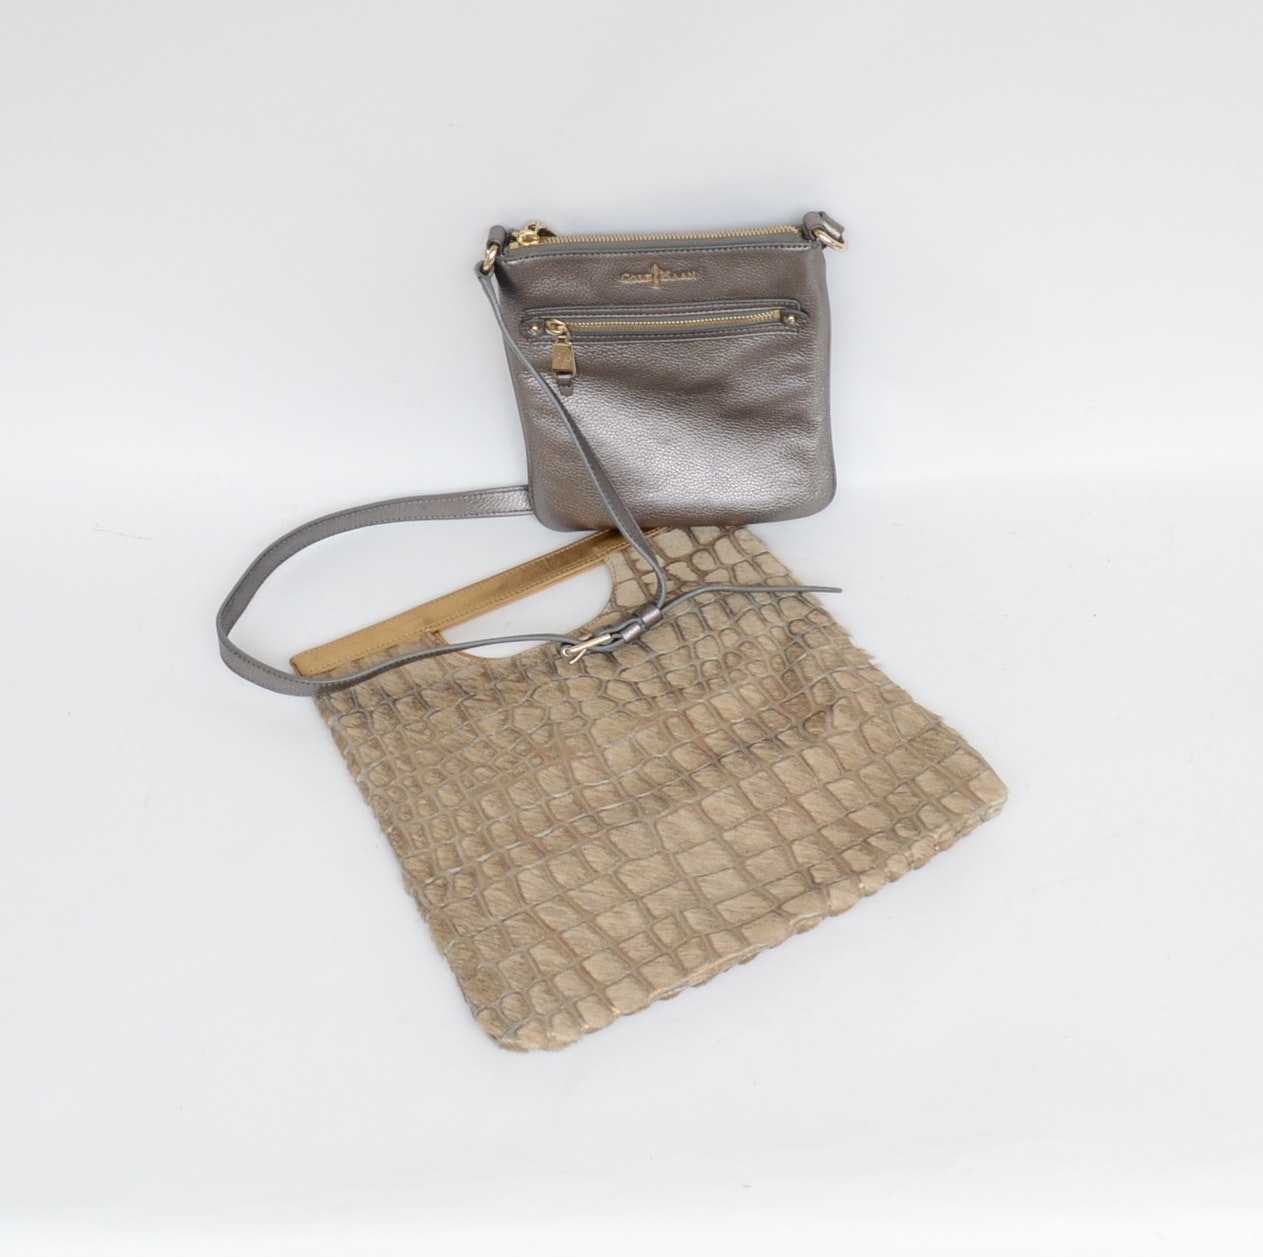 Nordstrom Embossed Calf Hair Bag and Cole Haan Silver Leather Crossbody